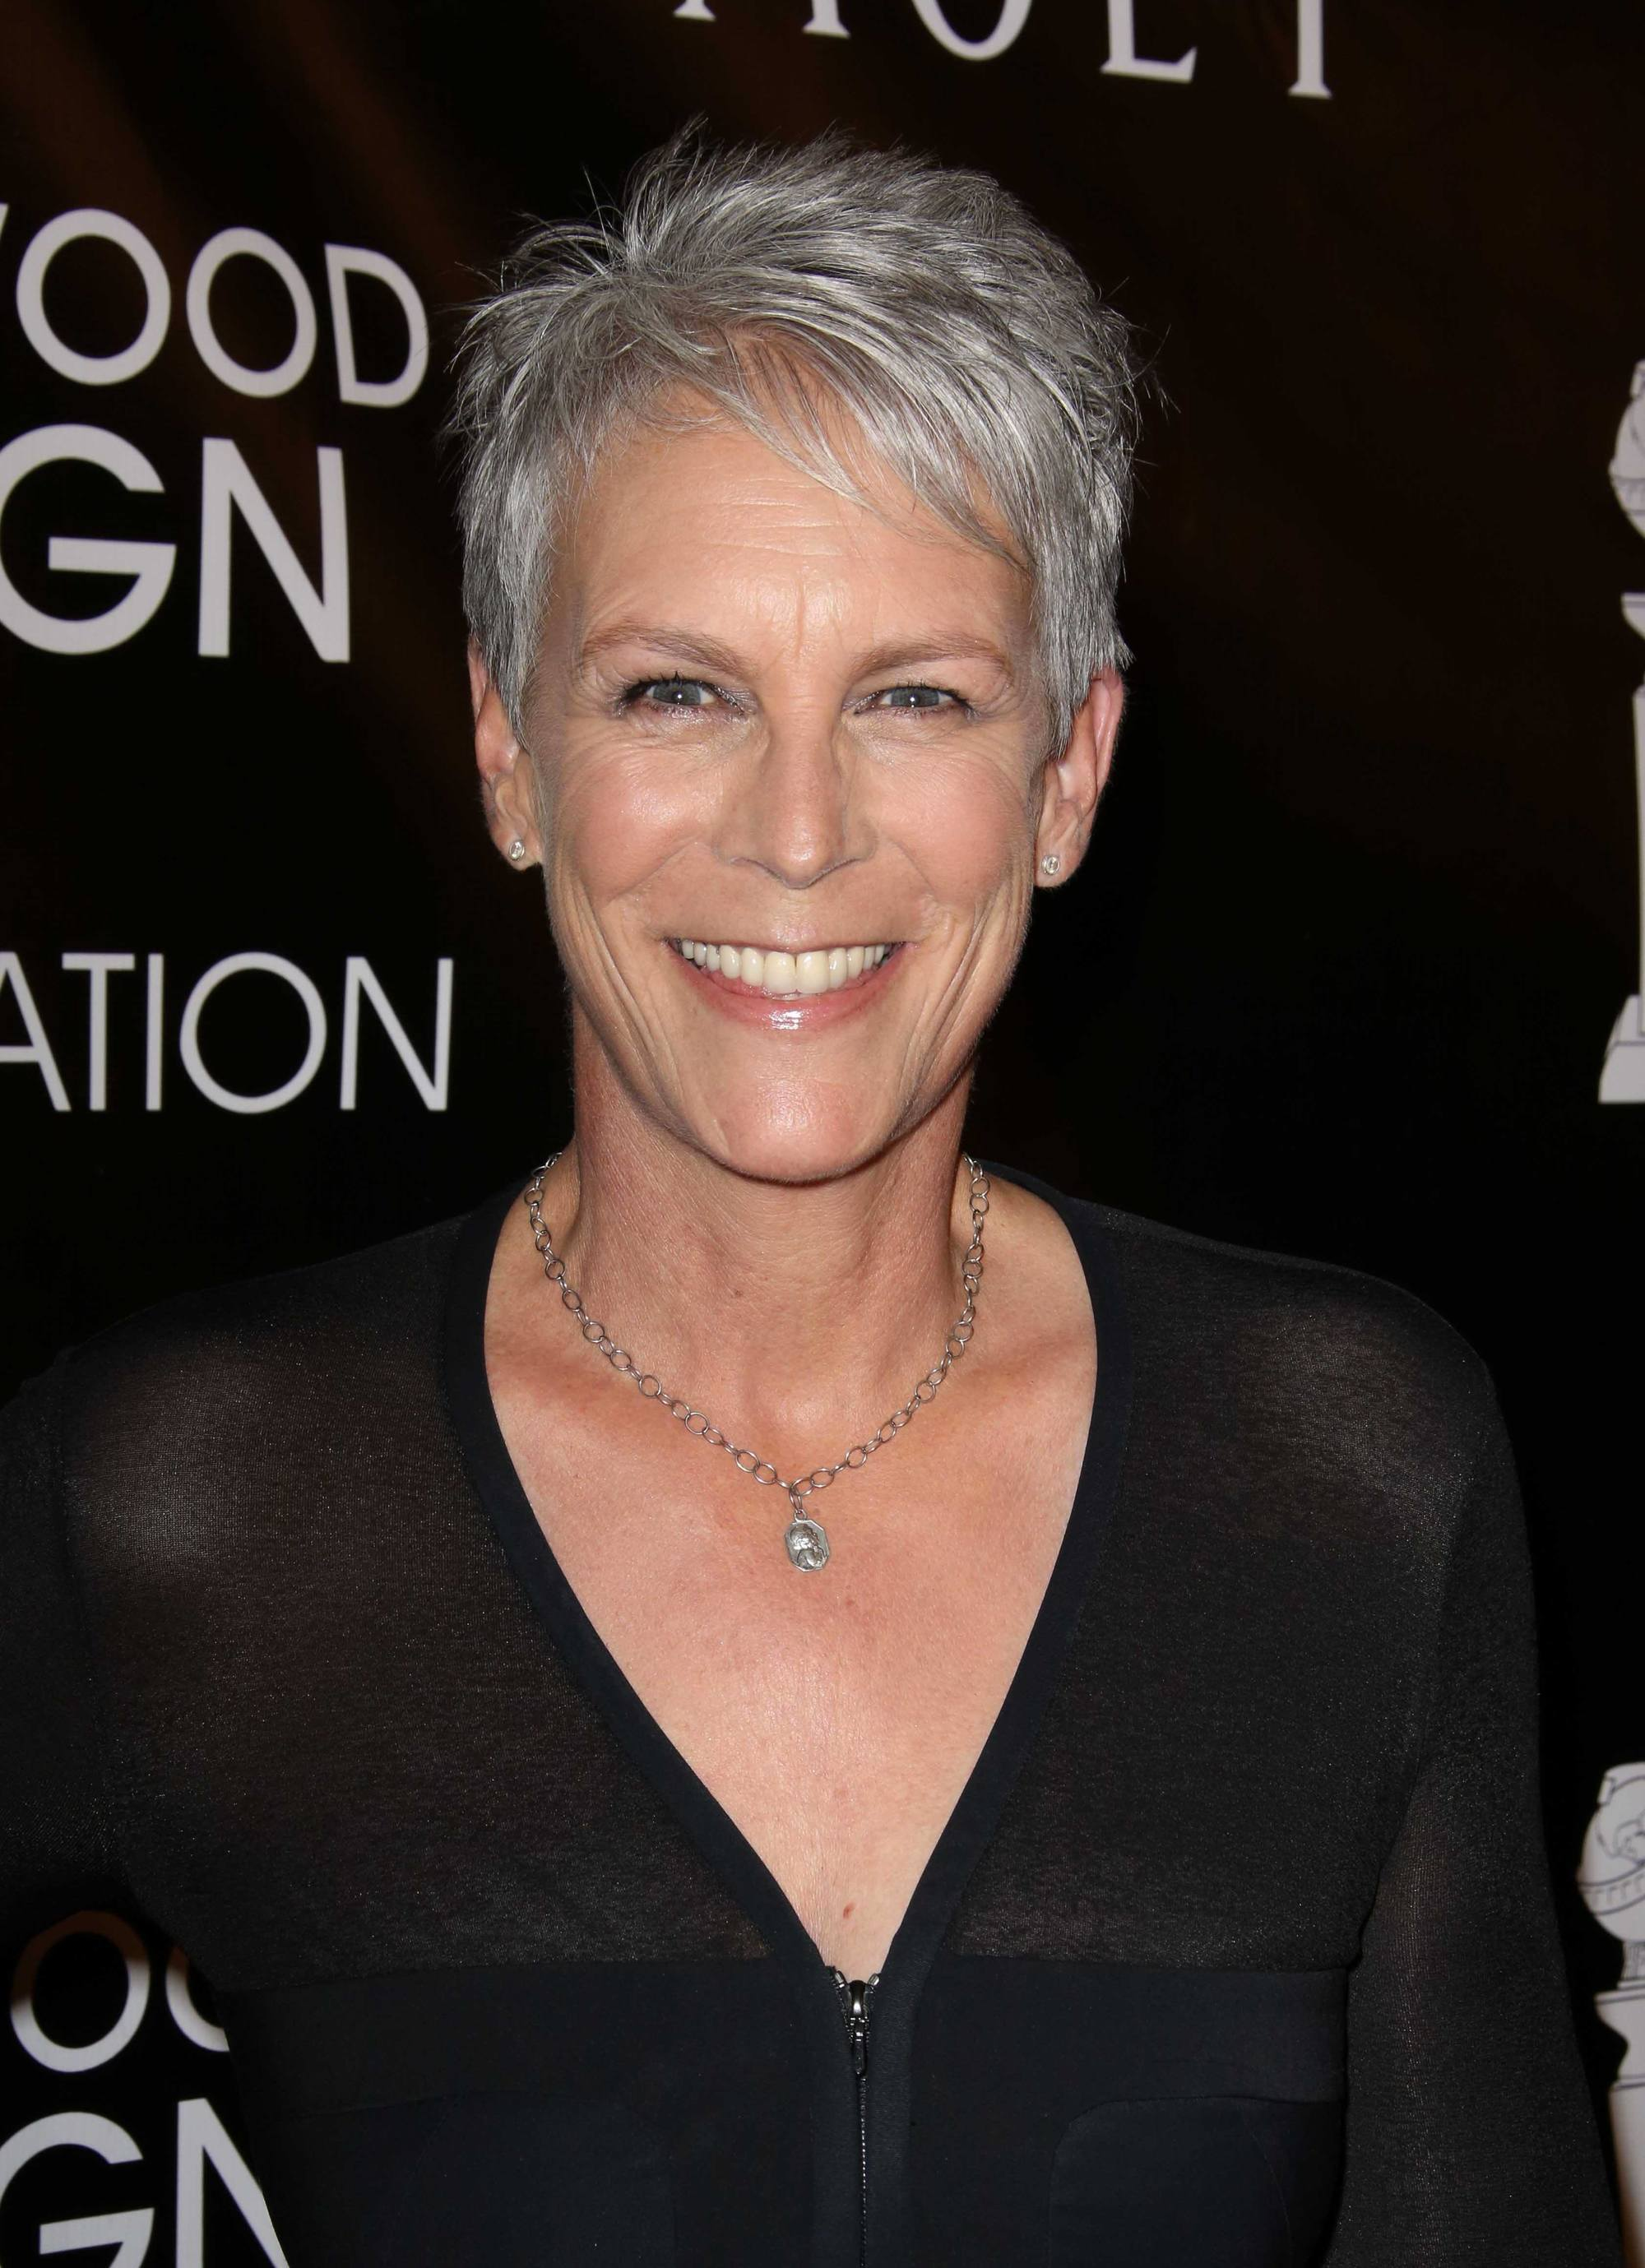 Pixie cut - Silver pixie hair - Jamie Lee Curtis. Credit Rex by Shutterstock